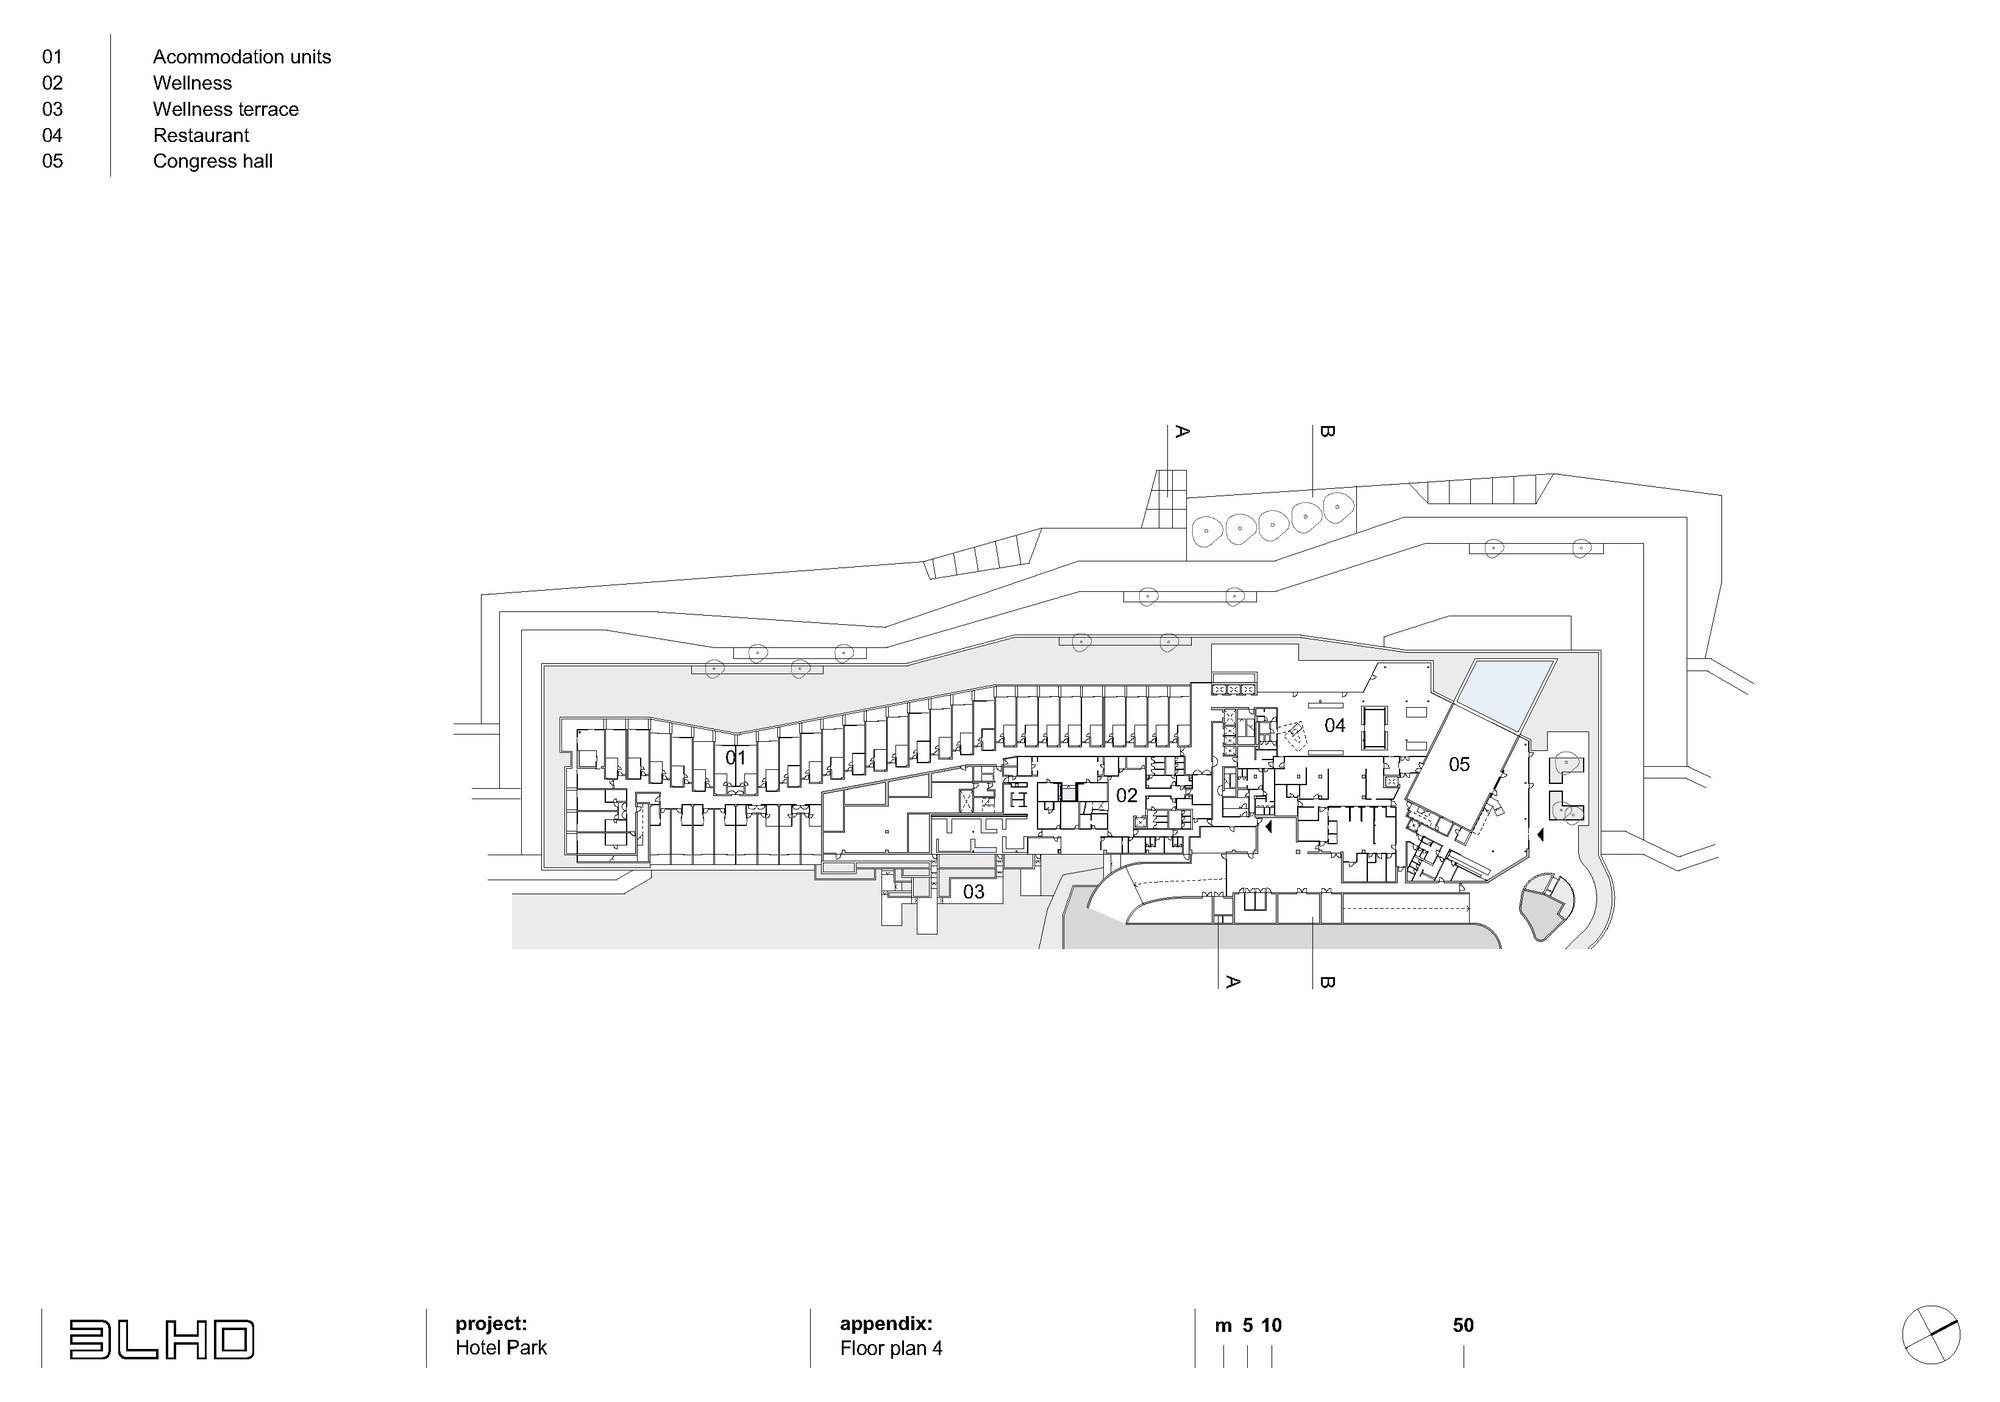 m6 _3LHD_202_GPHR_drawings_06_Floor_plan_4.jpg